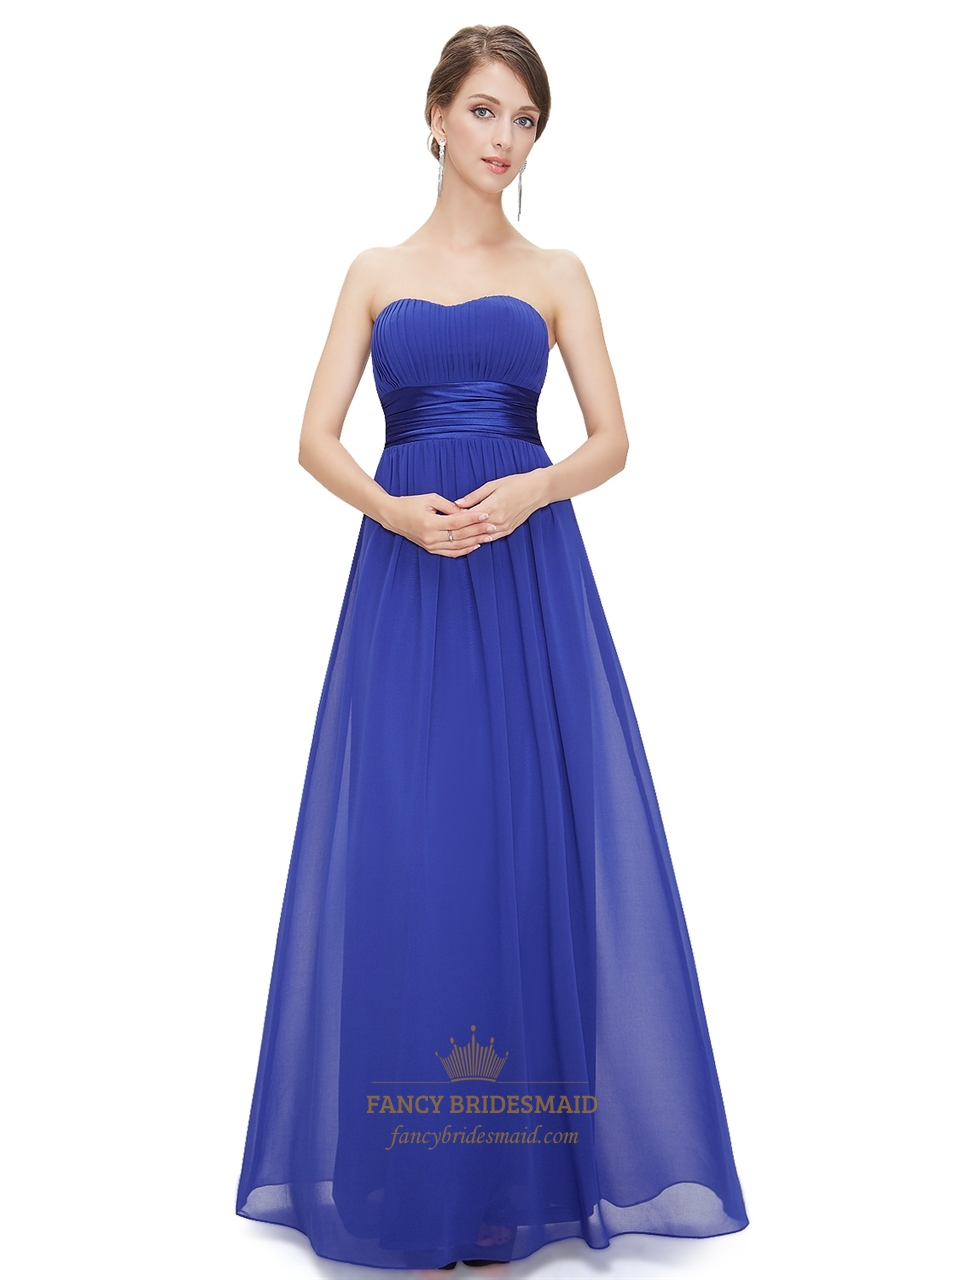 Royal blue chiffon strapless long bridesmaid dress for for Blue long dress wedding